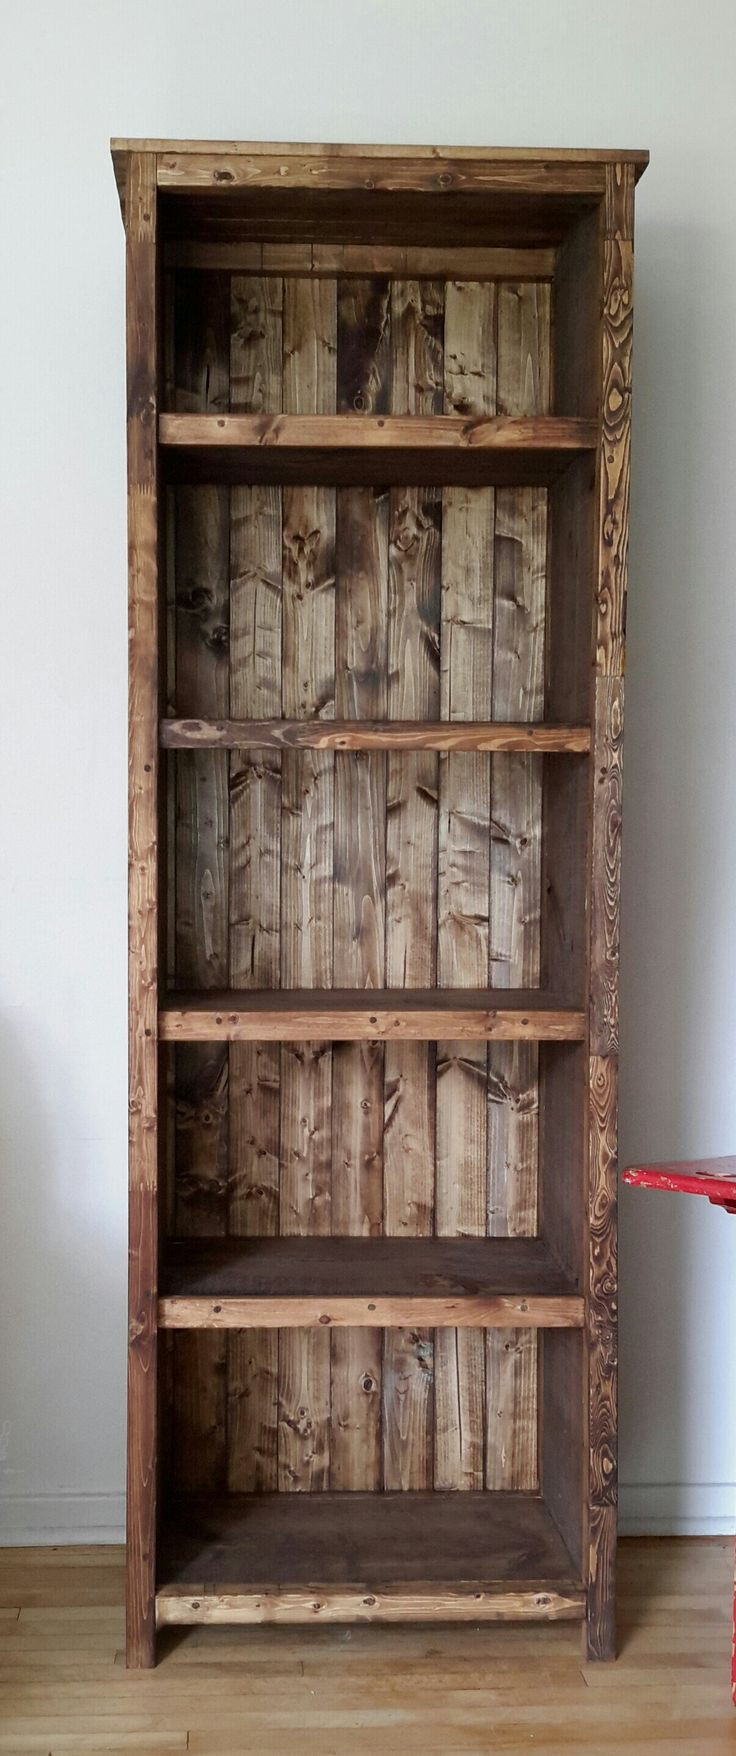 Best ideas about DIY Wood Bookshelves . Save or Pin 25 best ideas about Rustic Bookshelf on Pinterest Now.